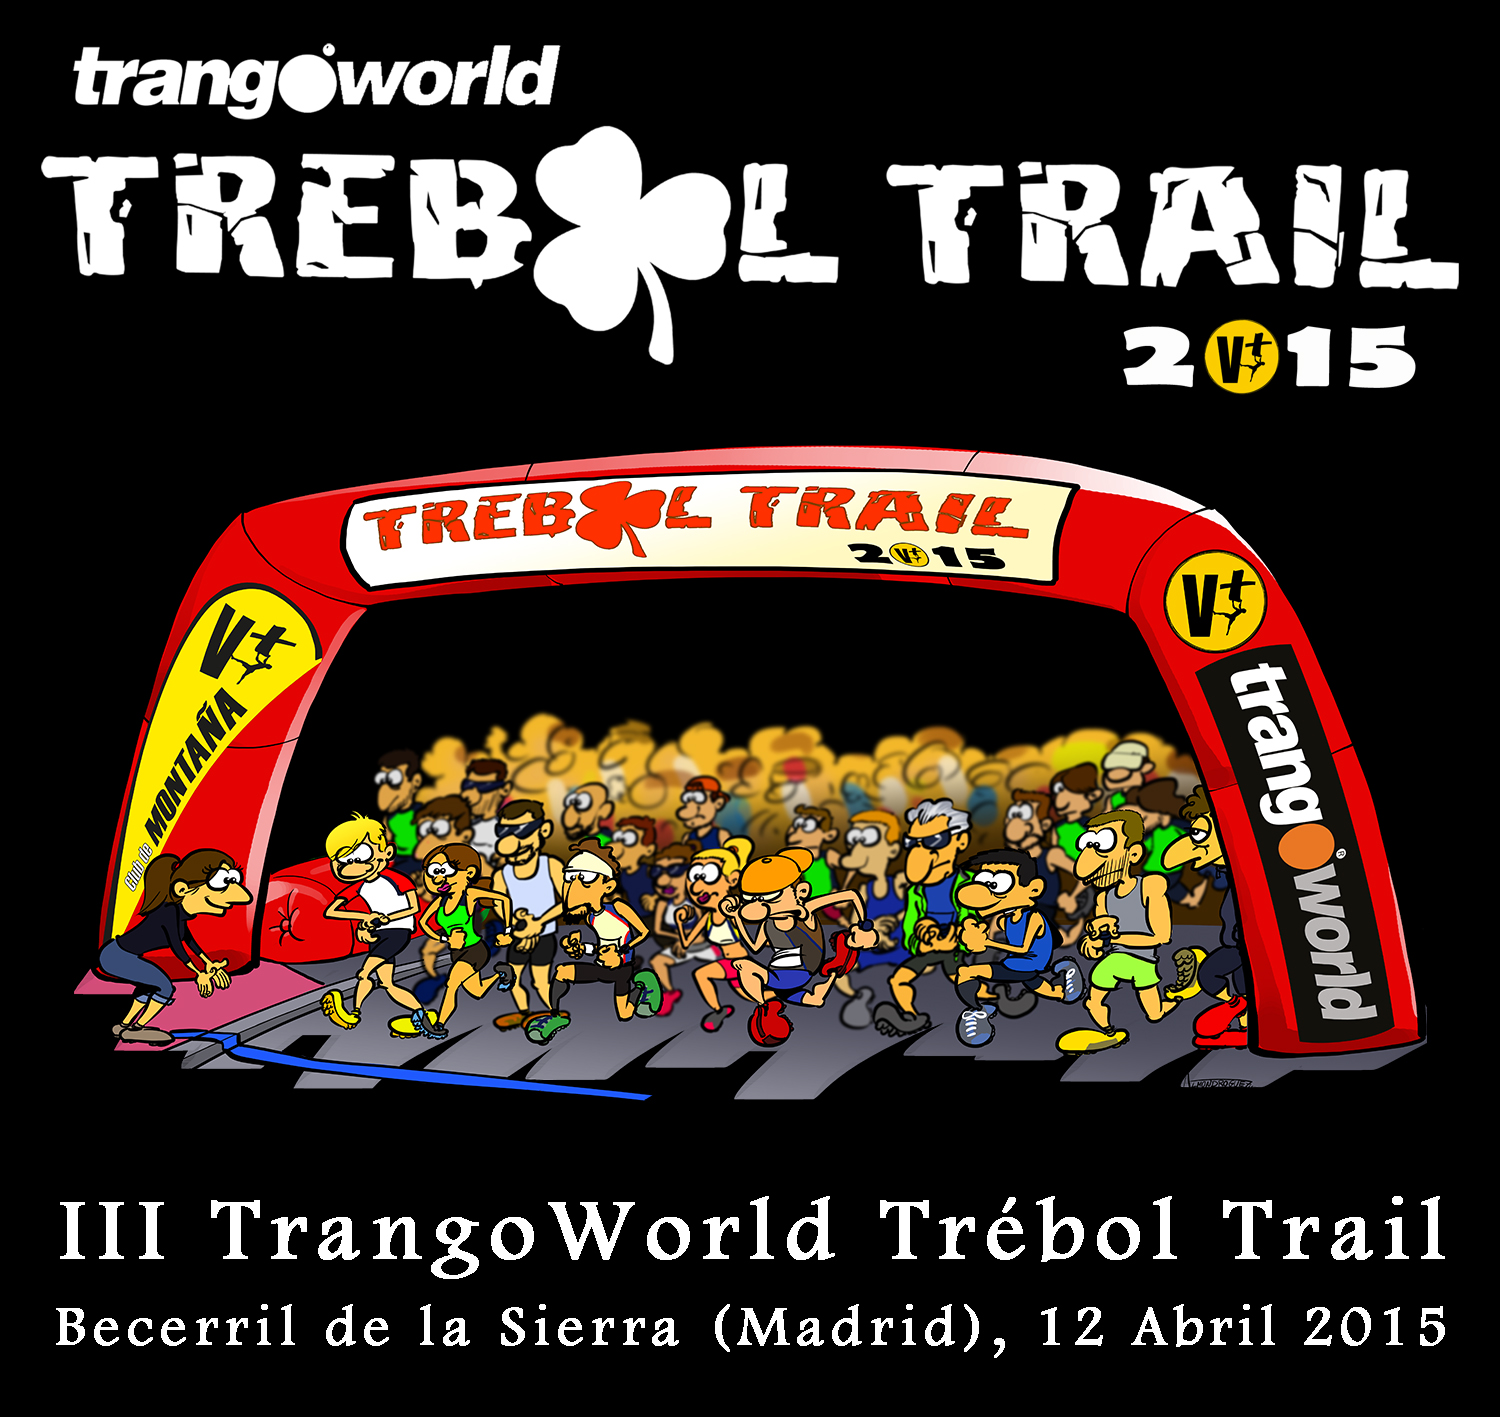 CLUB TODOVERTICAL - TR�BOL TRAIL